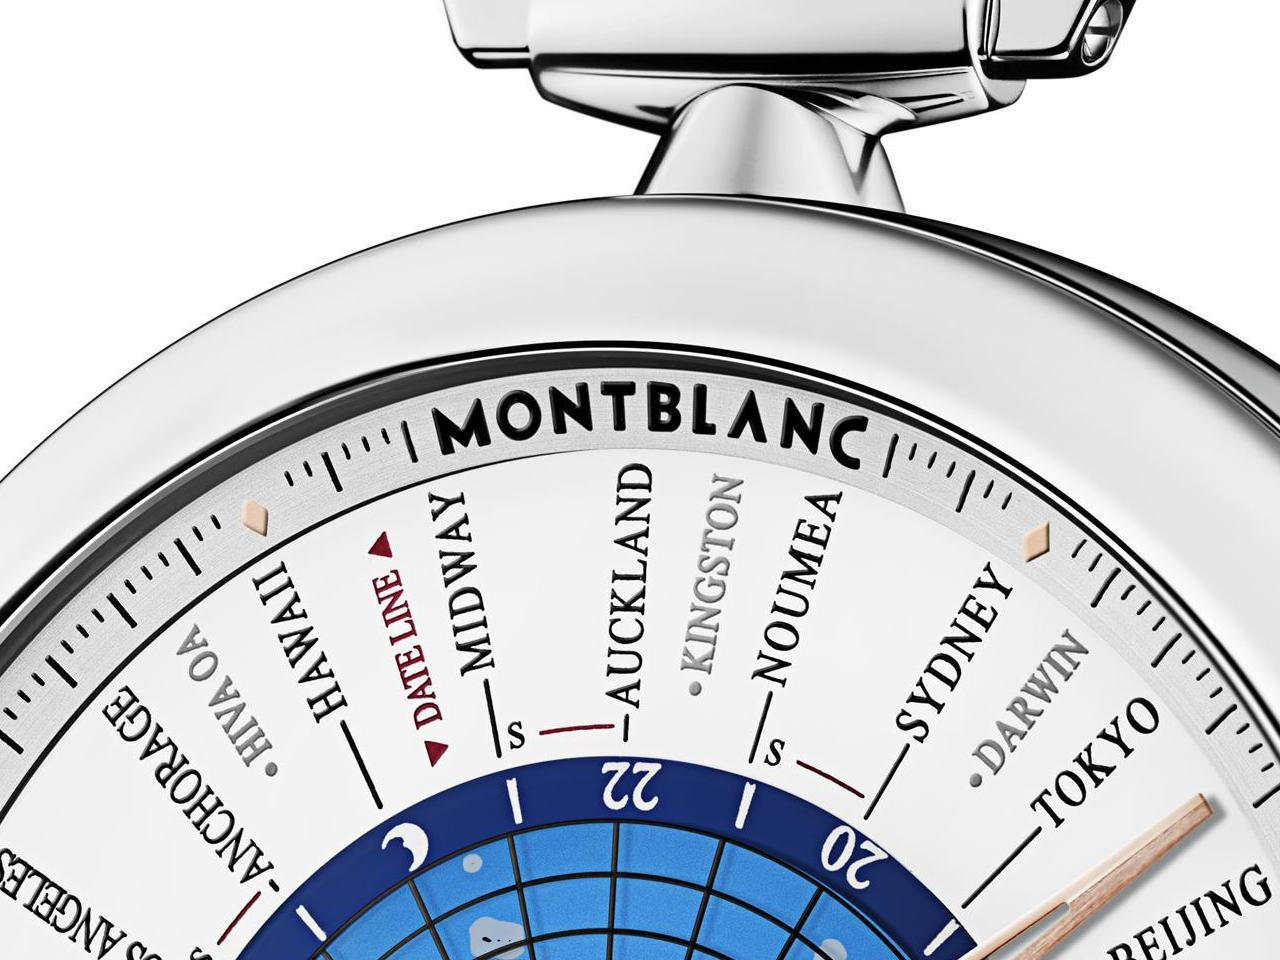 Montblanc-orbis-terrarum-pocket-watch-110-Years-Edition-sihh-2016_0-100_3